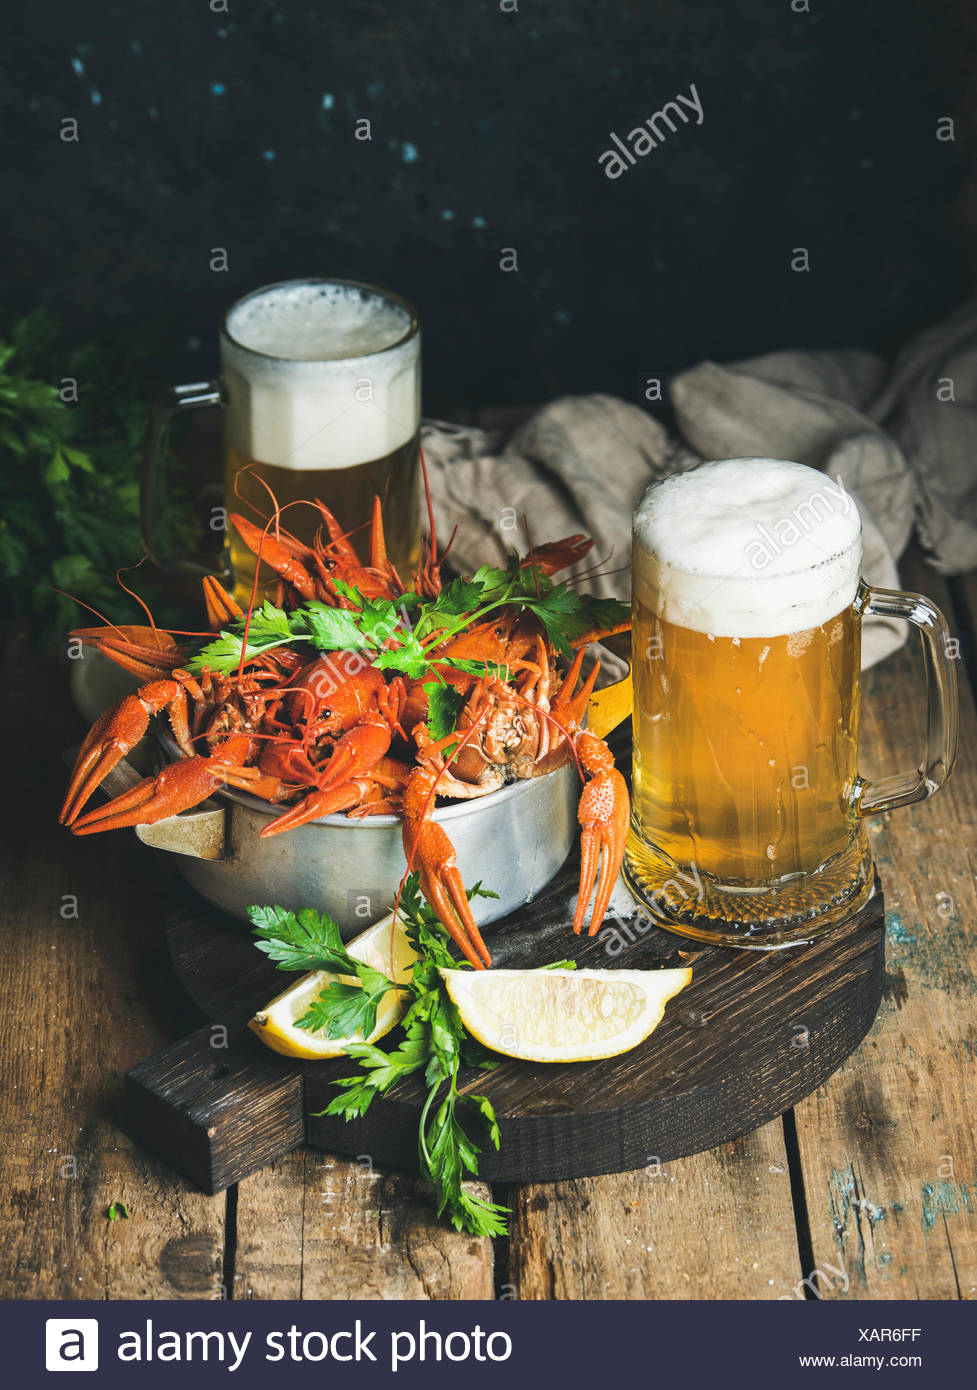 Two pints of wheat beer and boiled crayfish with lemon and parsley on dark round serving board over rustic wooden background, se - Stock Image